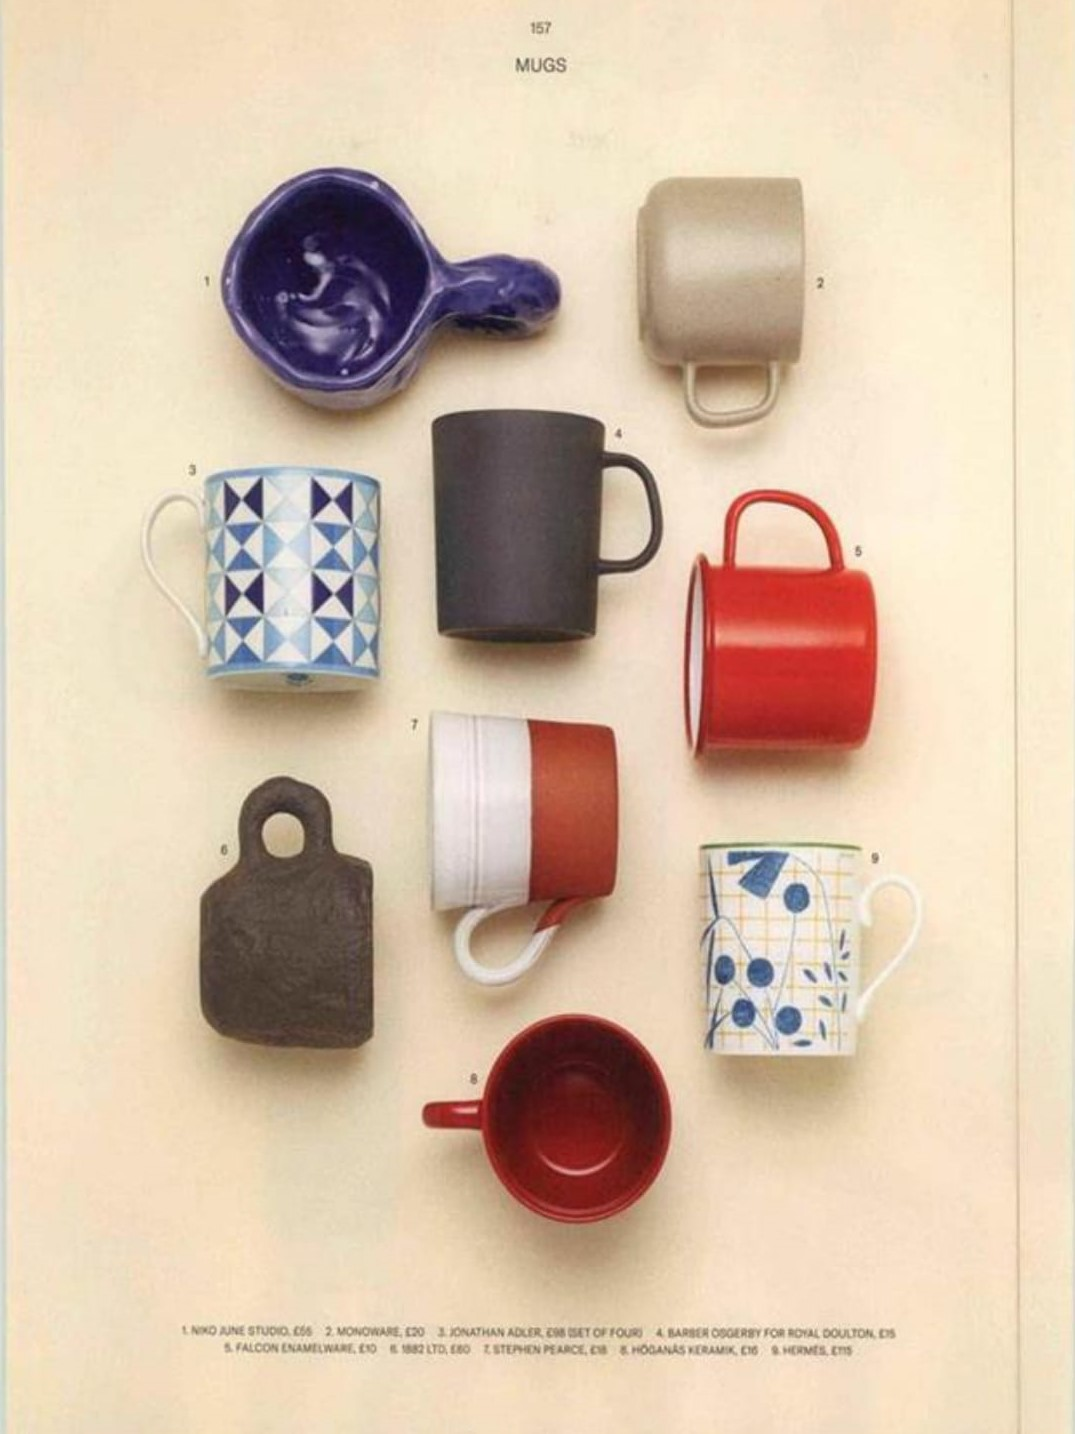 Don't be a mug - choose Jonathan Adler's Sorrento, as seen in Esquire